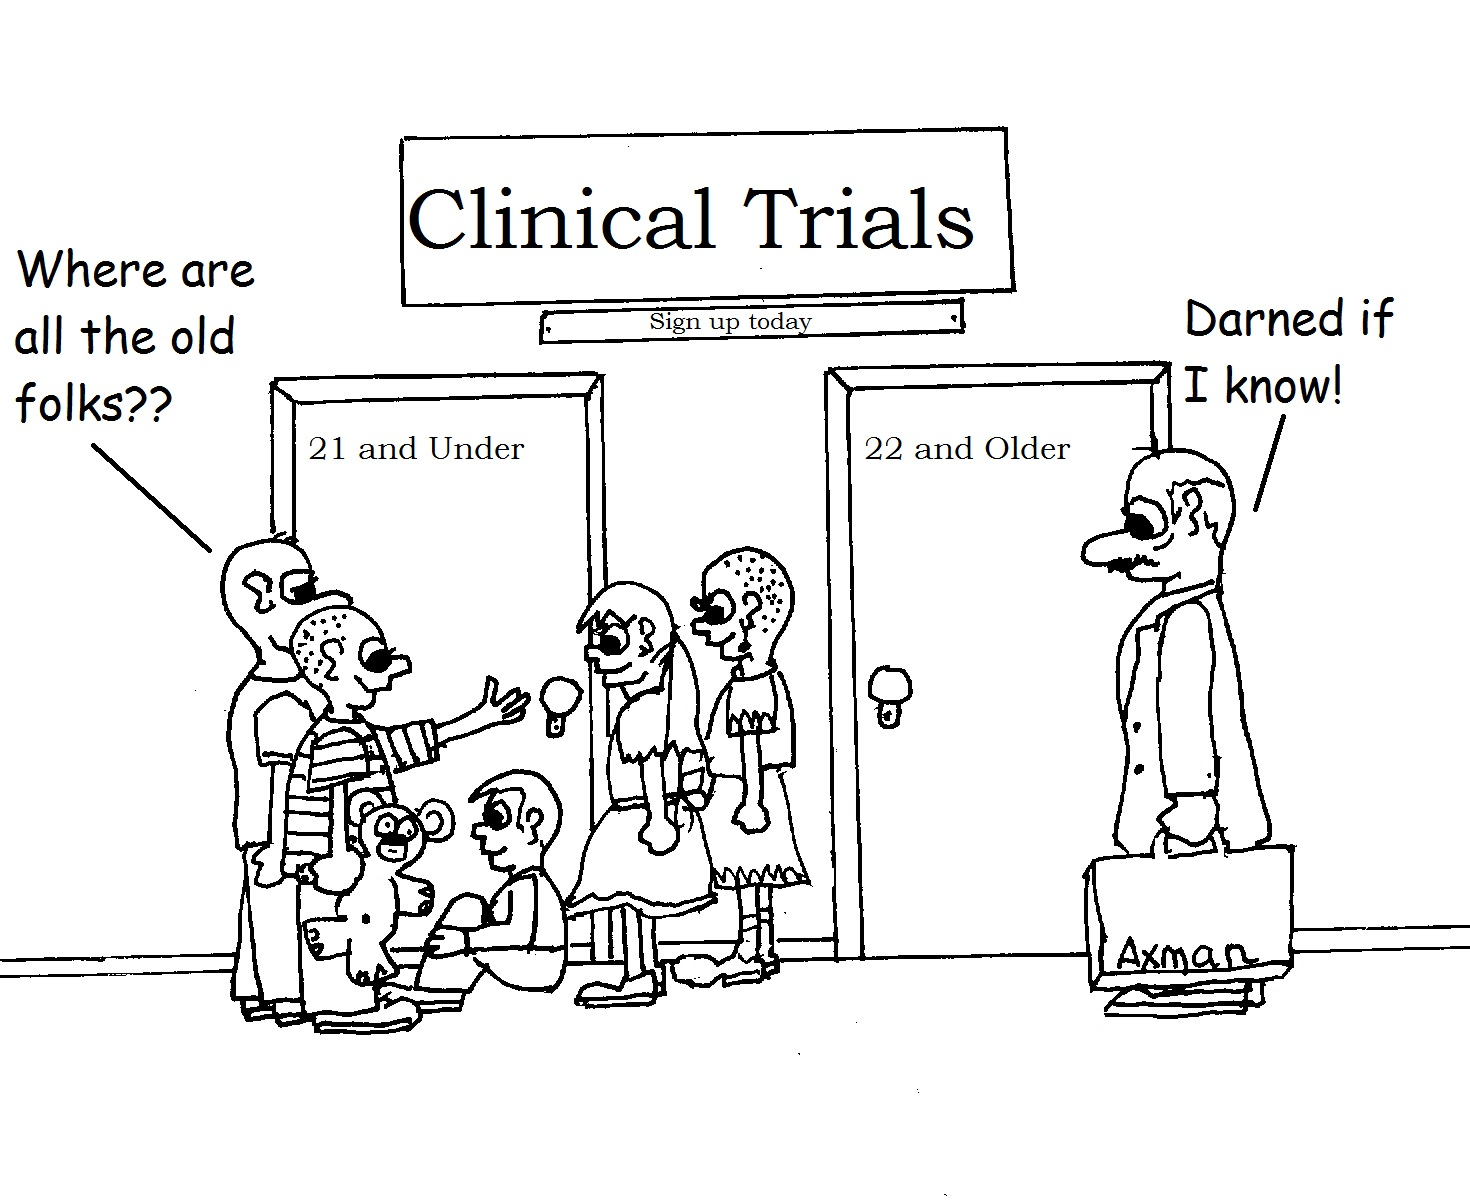 Cancer Clinical Trials: Clinical Trials in Cartoons.